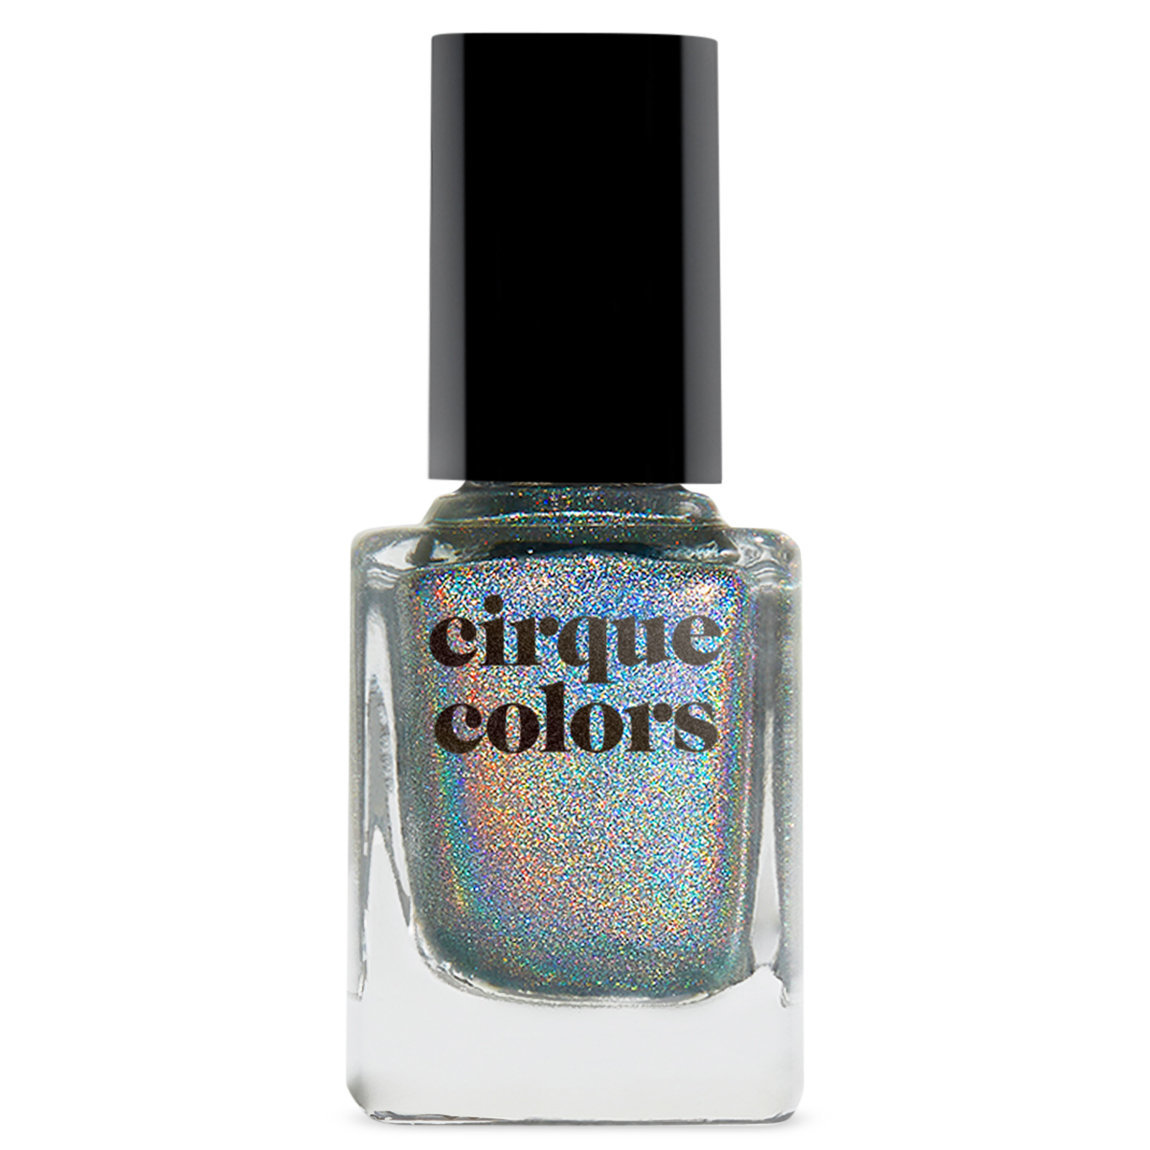 Cirque Colors Holographic Nail Polish Subculture alternative view 1 - product swatch.